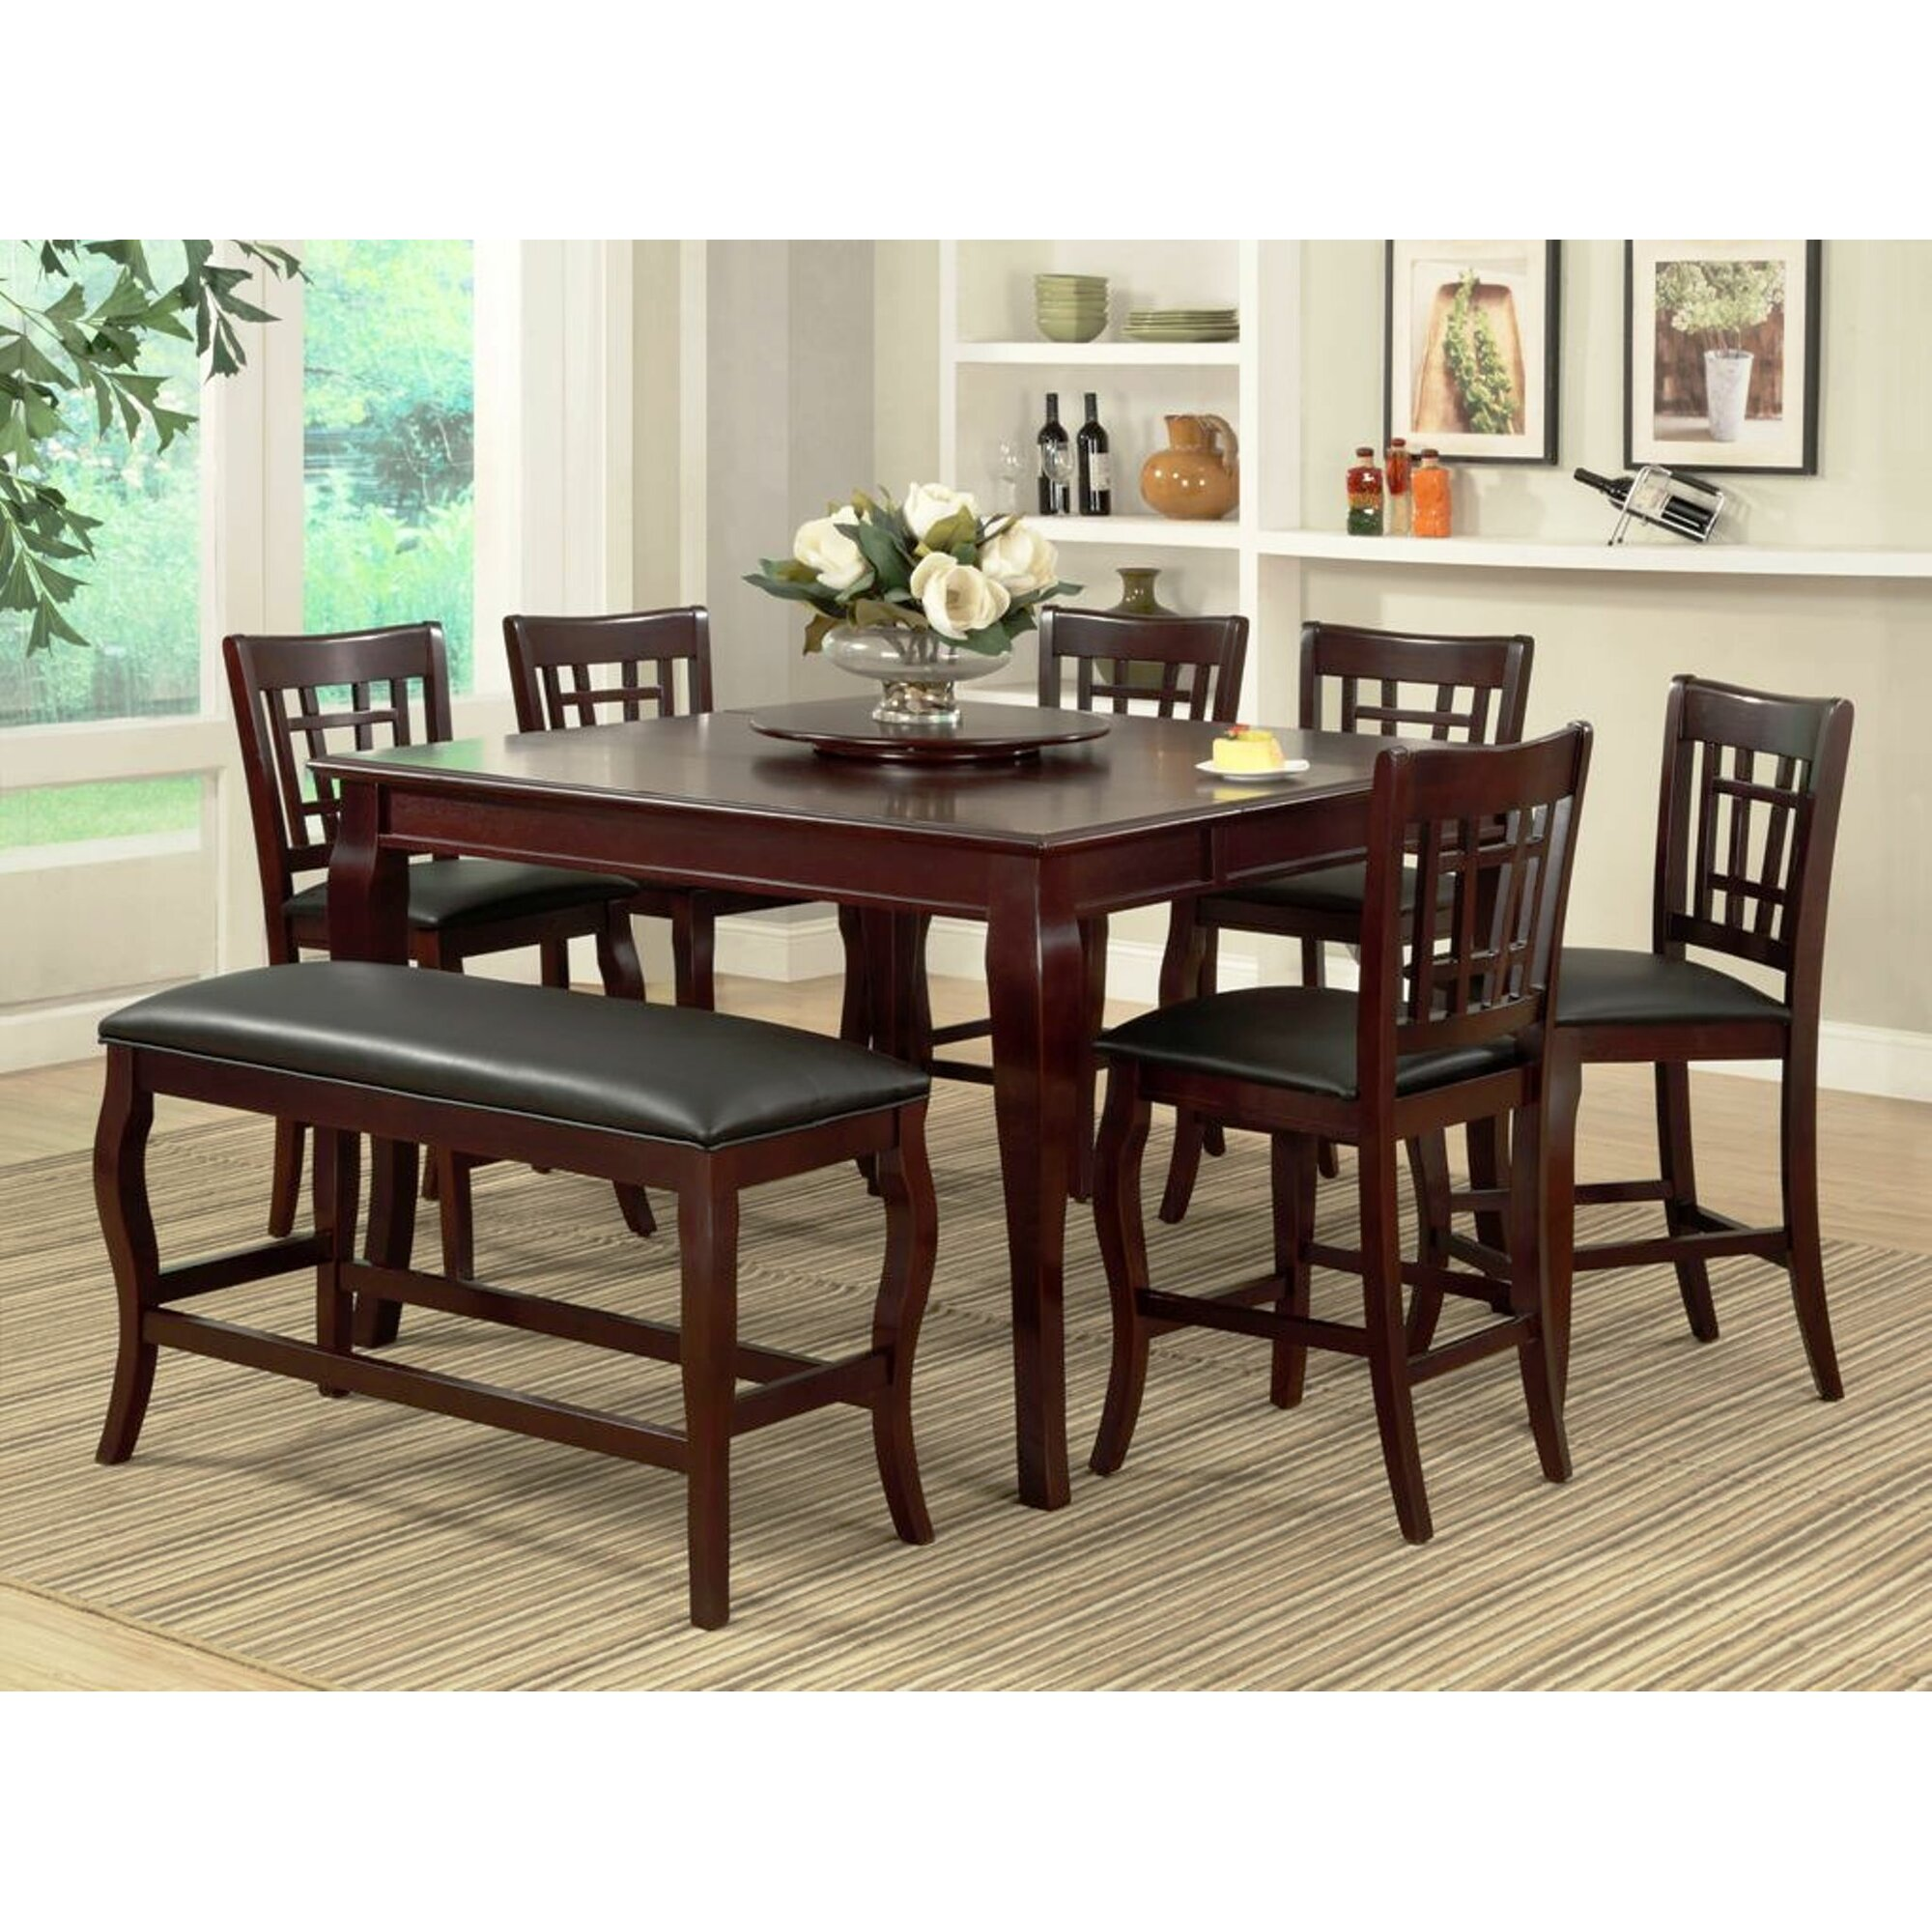 Kitchen pub table and chairs - Burgos 7 Piece Pub Table Set